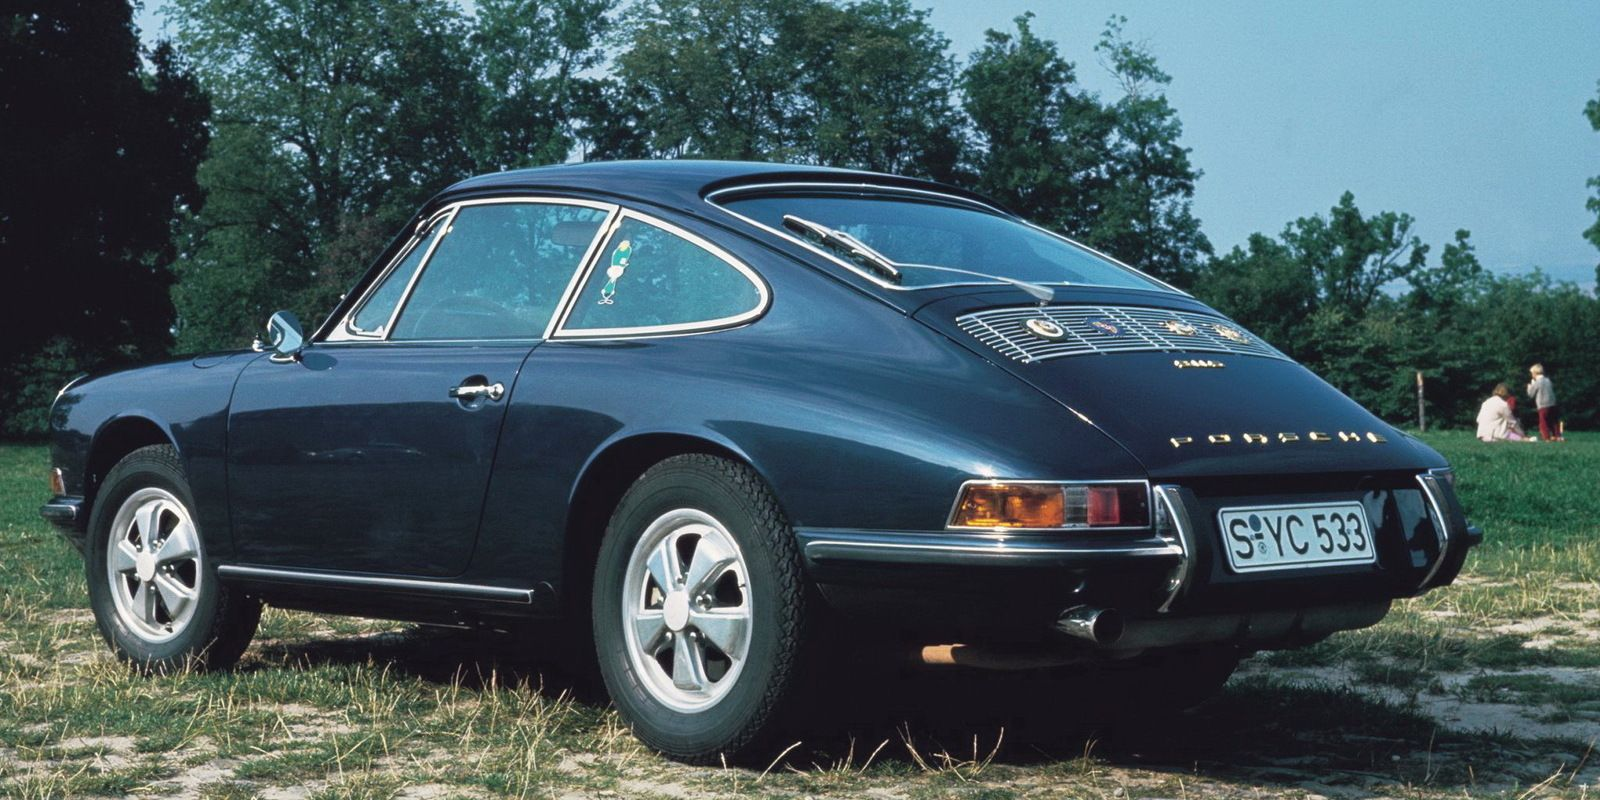 <p>We expect Porsche to build race-inspired 911s now, but that tradition arguably started with the 1967 911 S. While this model wasn't designed for a specific race series, it was much sportier than your average street car of the era. Its 2.0-liter flat-six produced 180-hp with a crazy 7200 rpm redline, and it was the first model offered with the iconic Fuchs alloy wheels. </p>